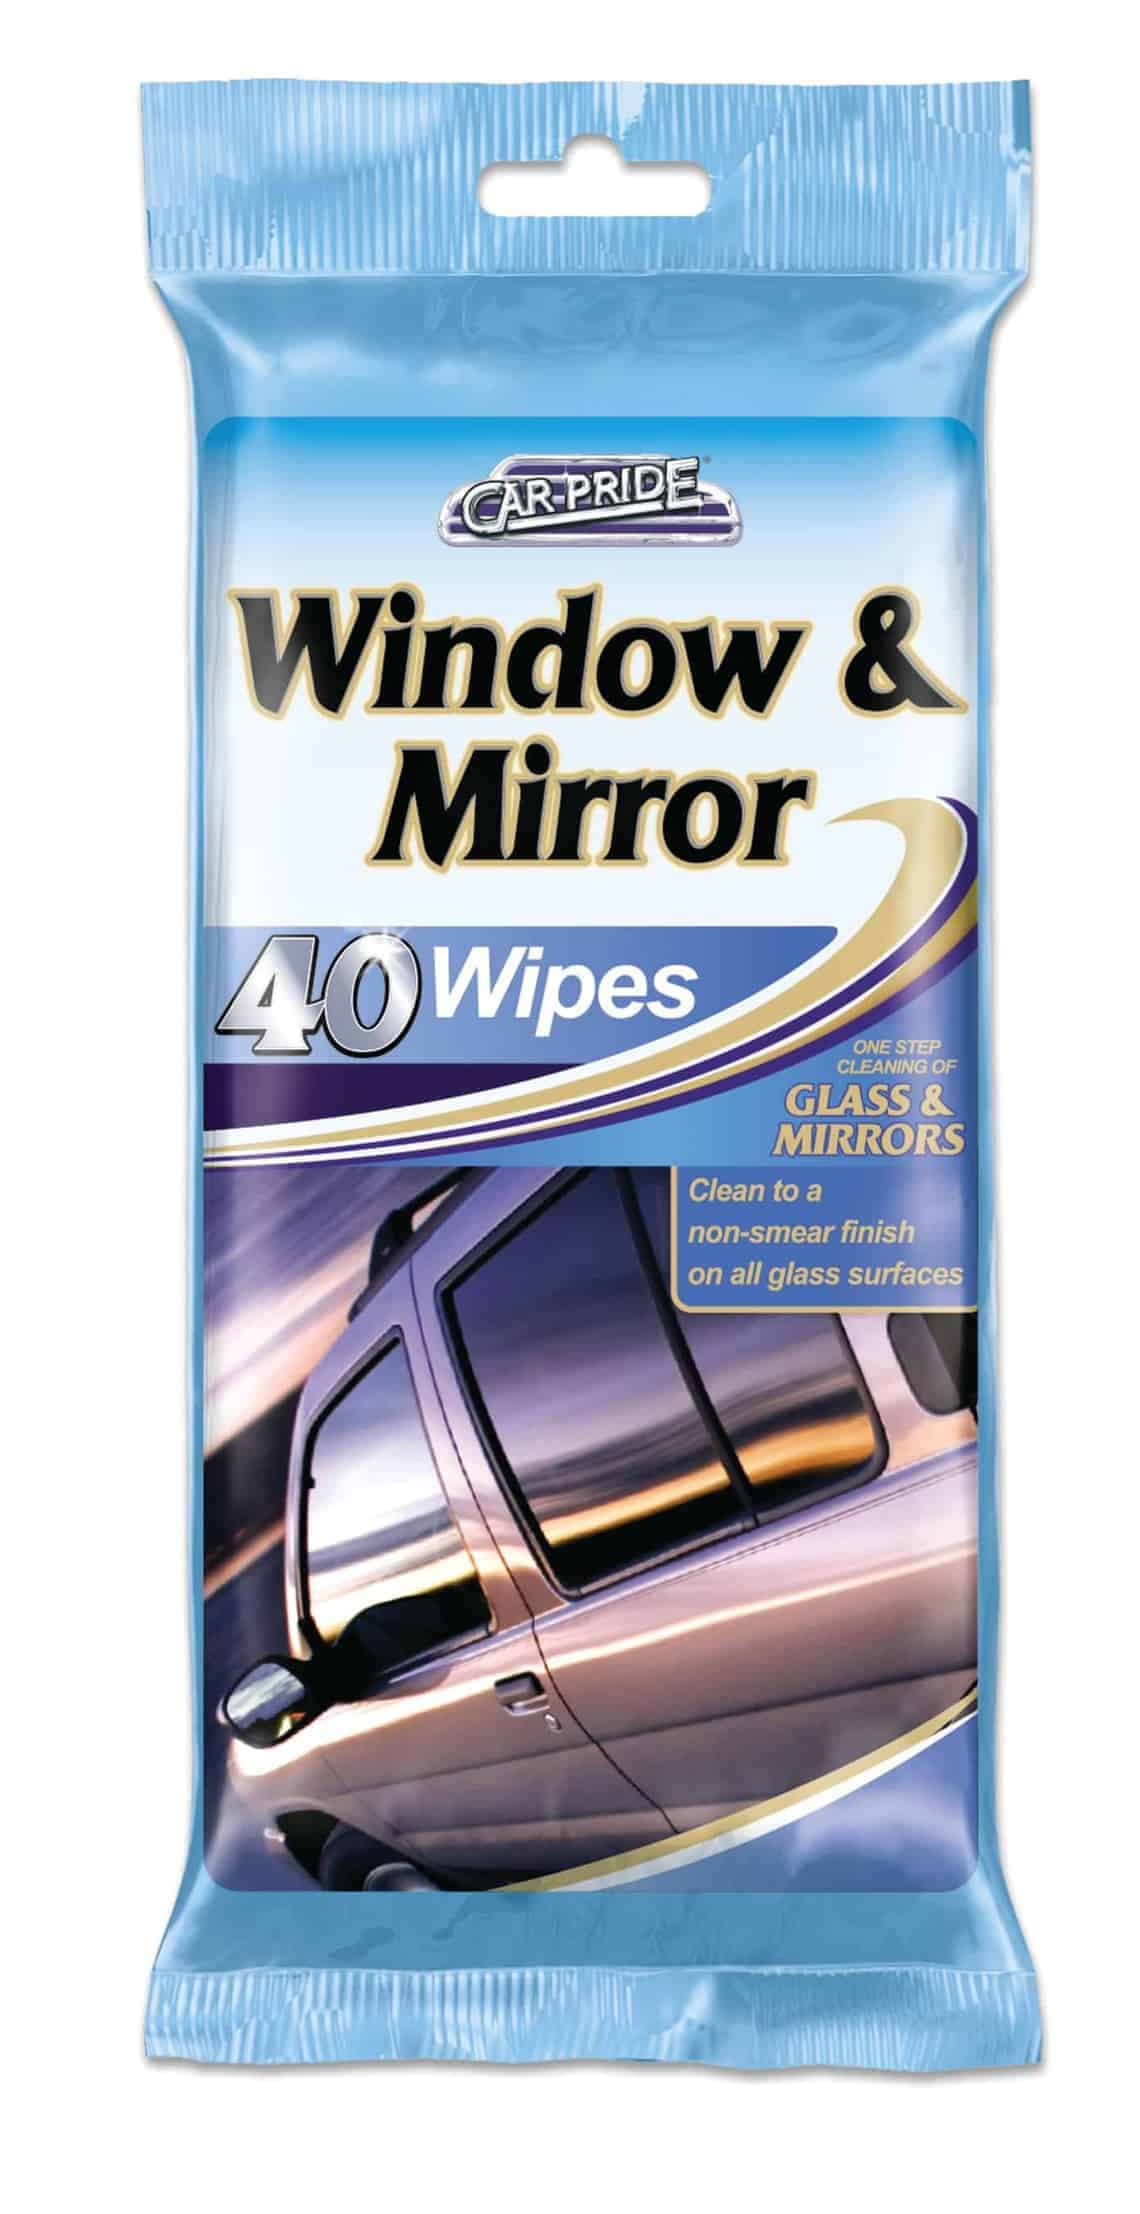 Carpride 40pk Window & Mirror Wipes